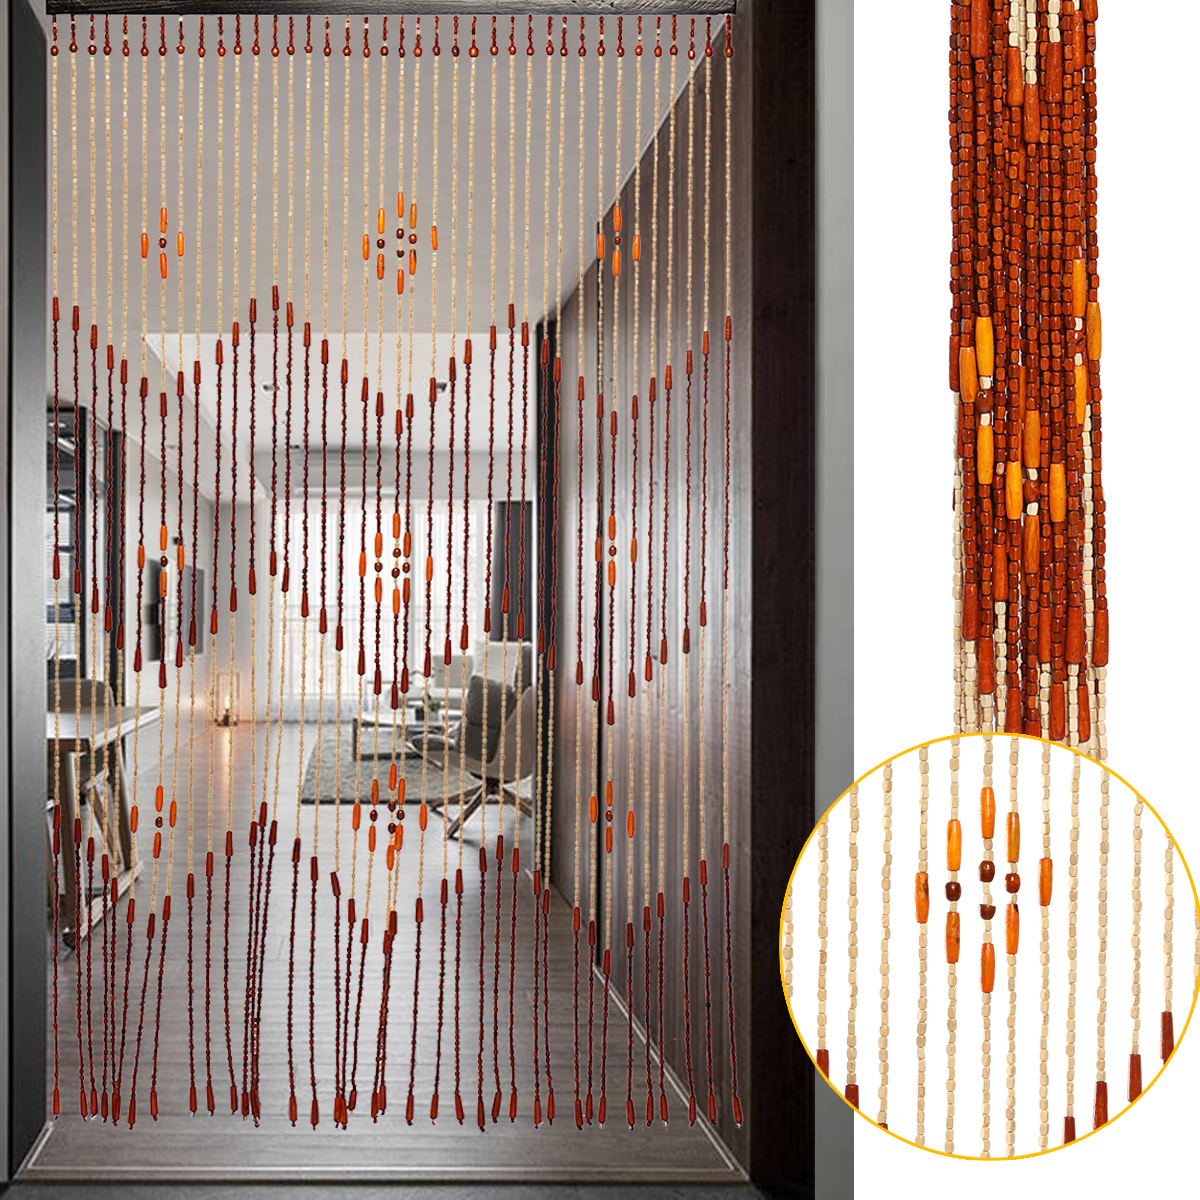 Wooden Door Blinds Fashion Wooden Door Curtain Blinds Handmade Fly Screen Wooden Beads Room Divider 90x175cm 38 Wave 90x195cm 36 Line